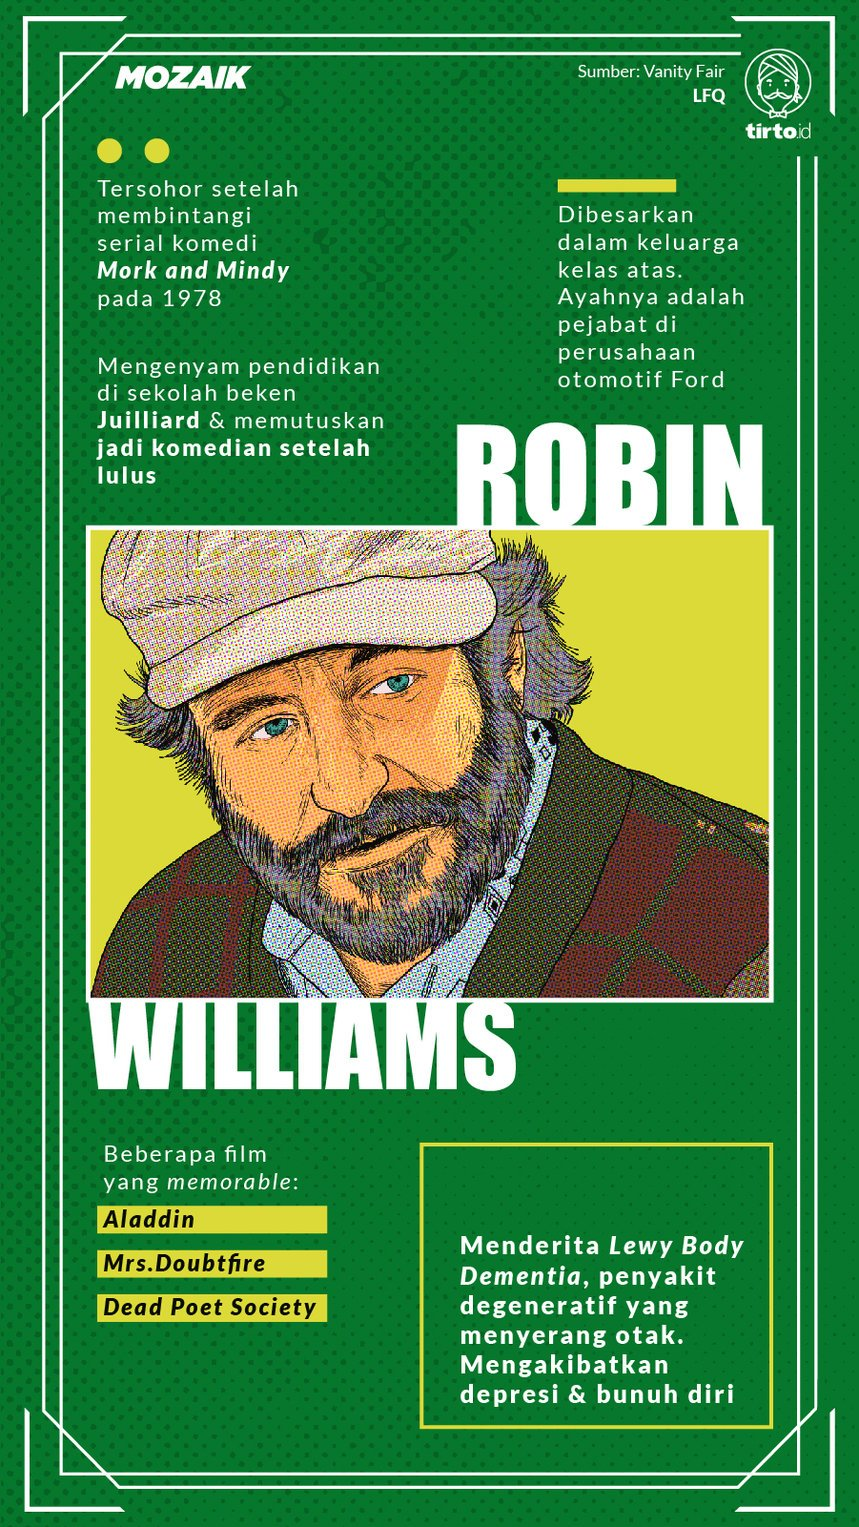 Infografik mozaik Robin Williams